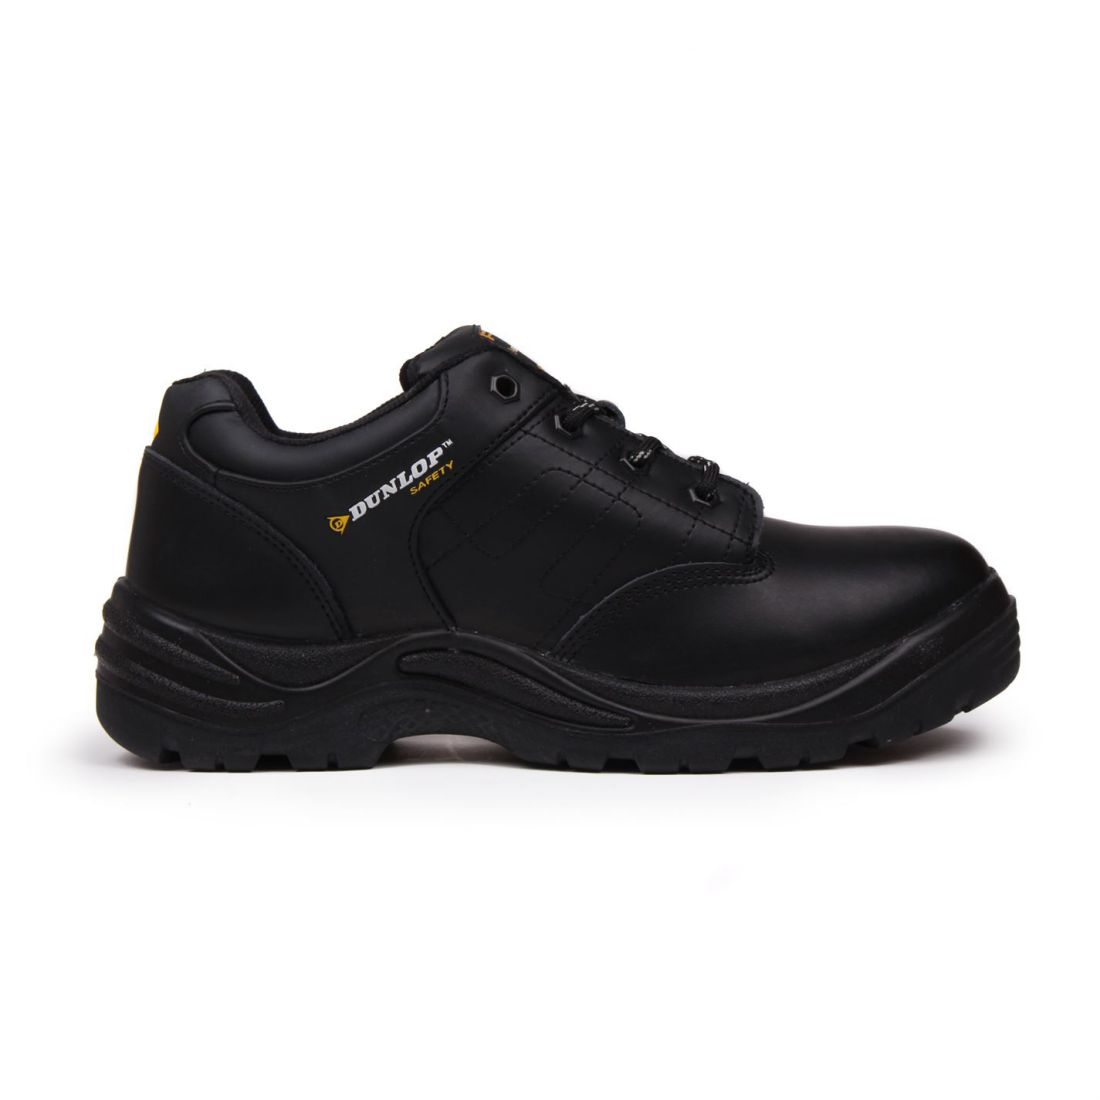 Details about Dunlop Mens Kansas Safety Lace Up Shock Absorbing Oil and Slip  Resistant Shoes 1d3a531a4